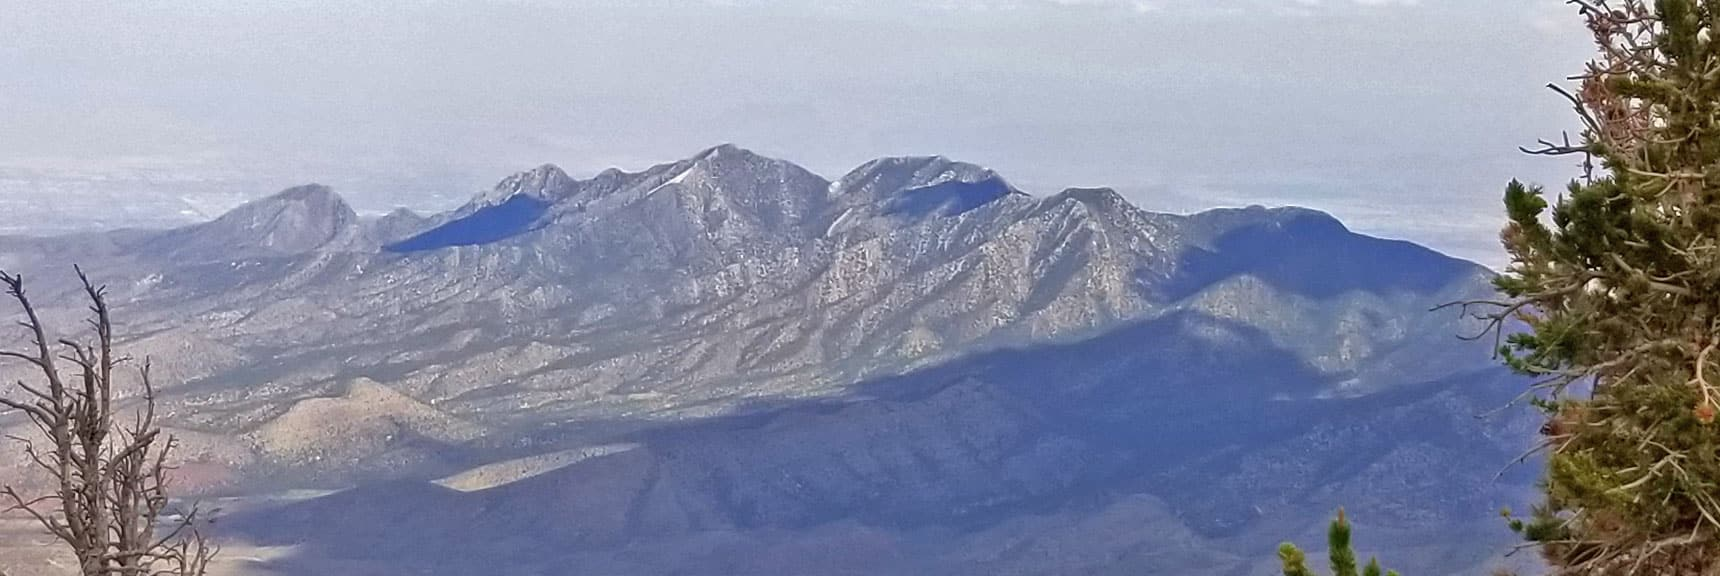 La Madre Mountain Viewed from Harris Mountain Summit | Six Peak Circuit Adventure in the Spring Mountains, Nevada